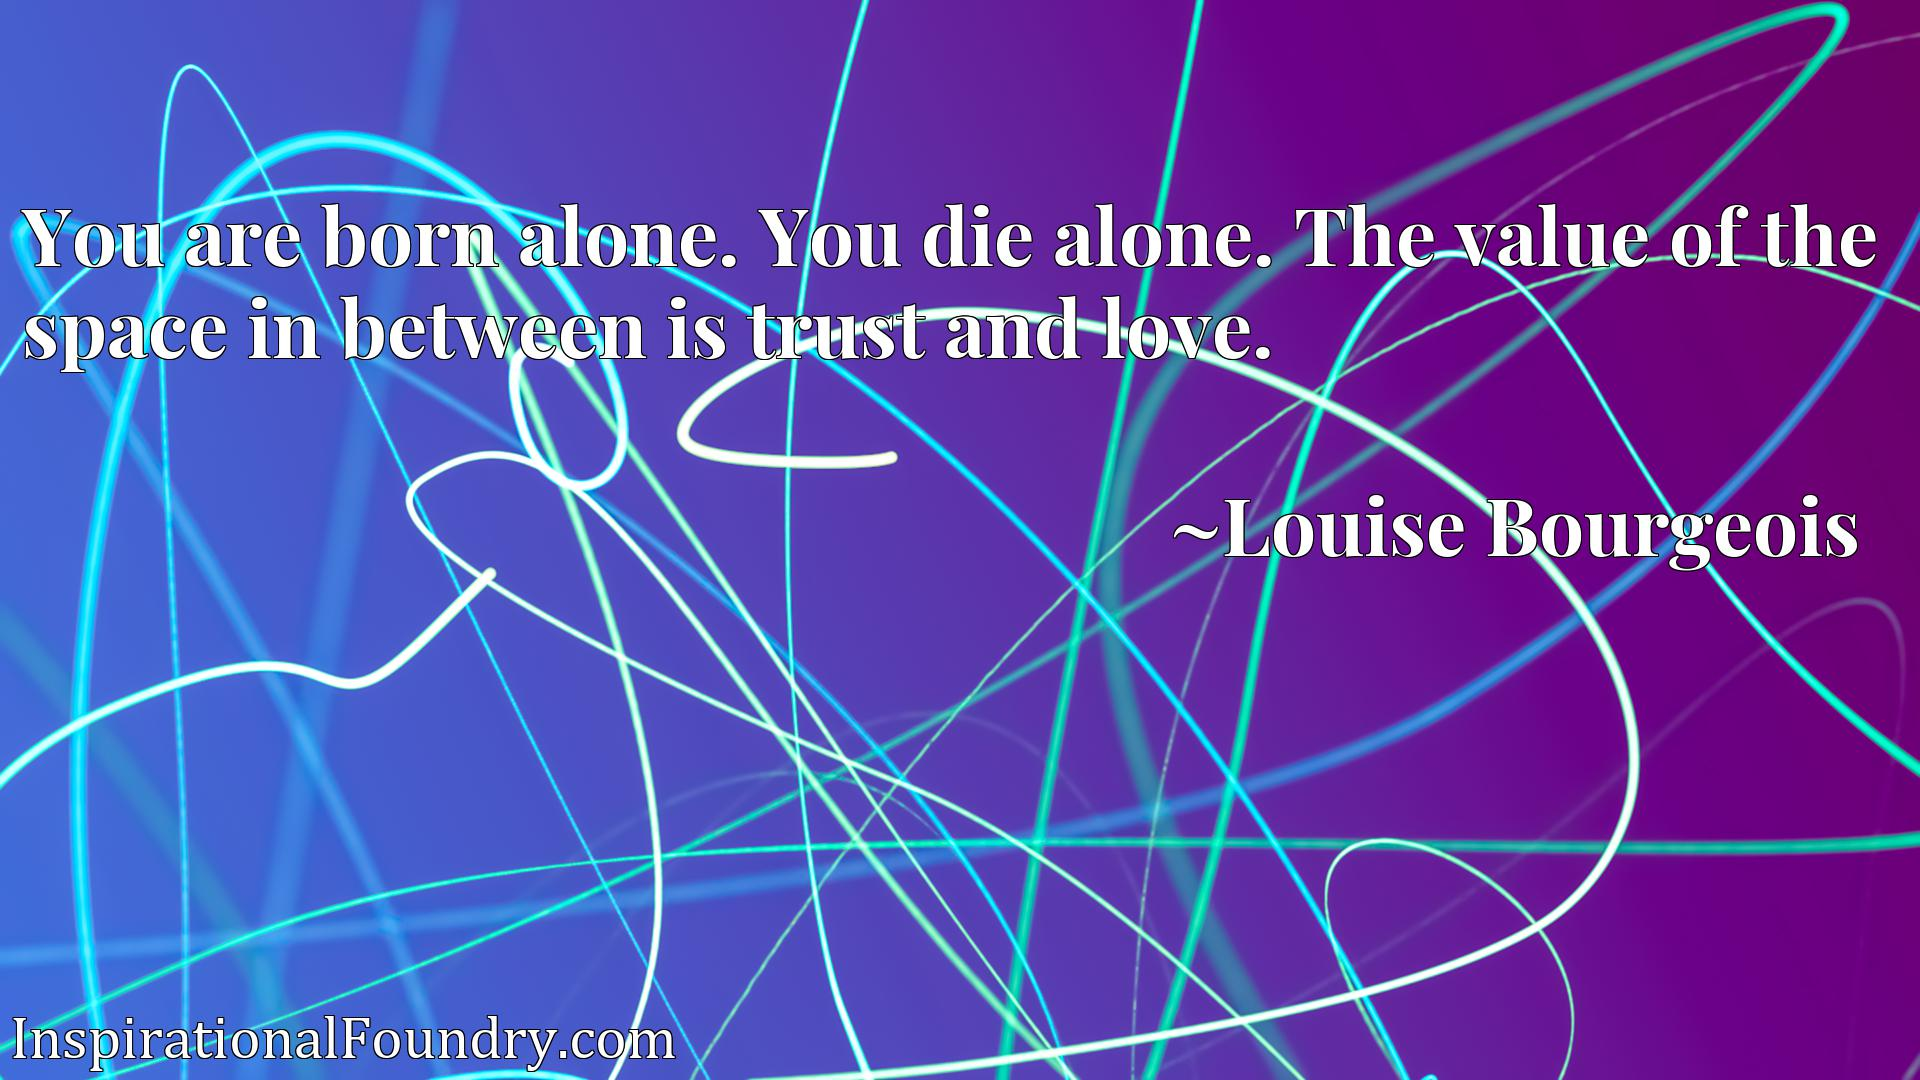 You are born alone. You die alone. The value of the space in between is trust and love.